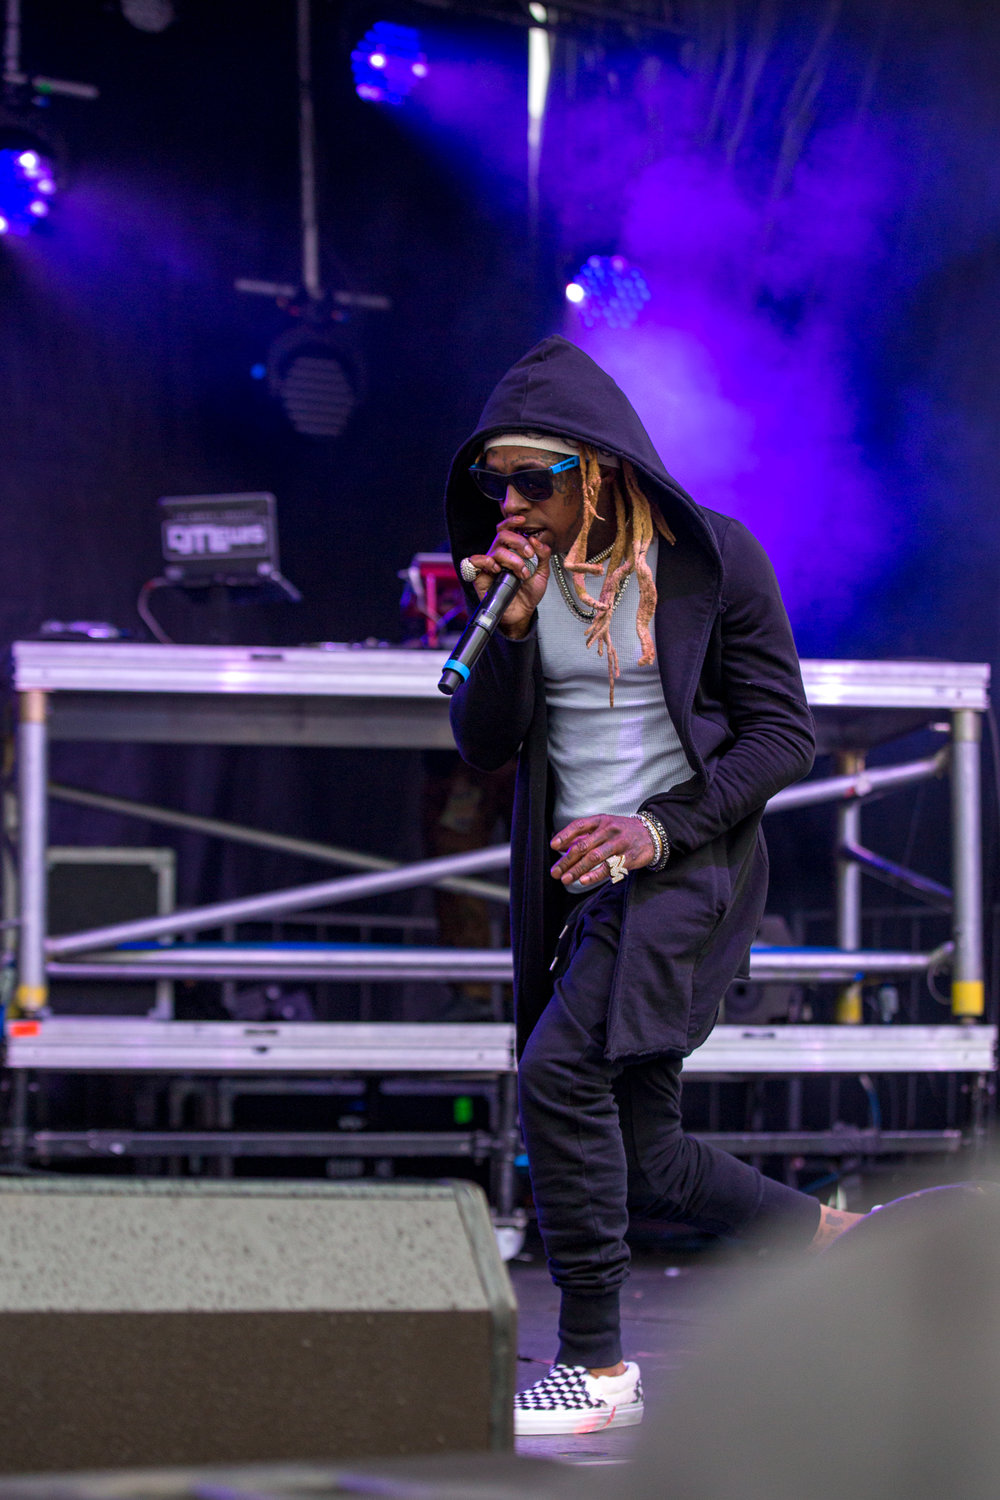 Mile High 420 Festival Civic Center Park Nikki A. Rae Photography Lil Wayne 04.20.2018-7.jpg